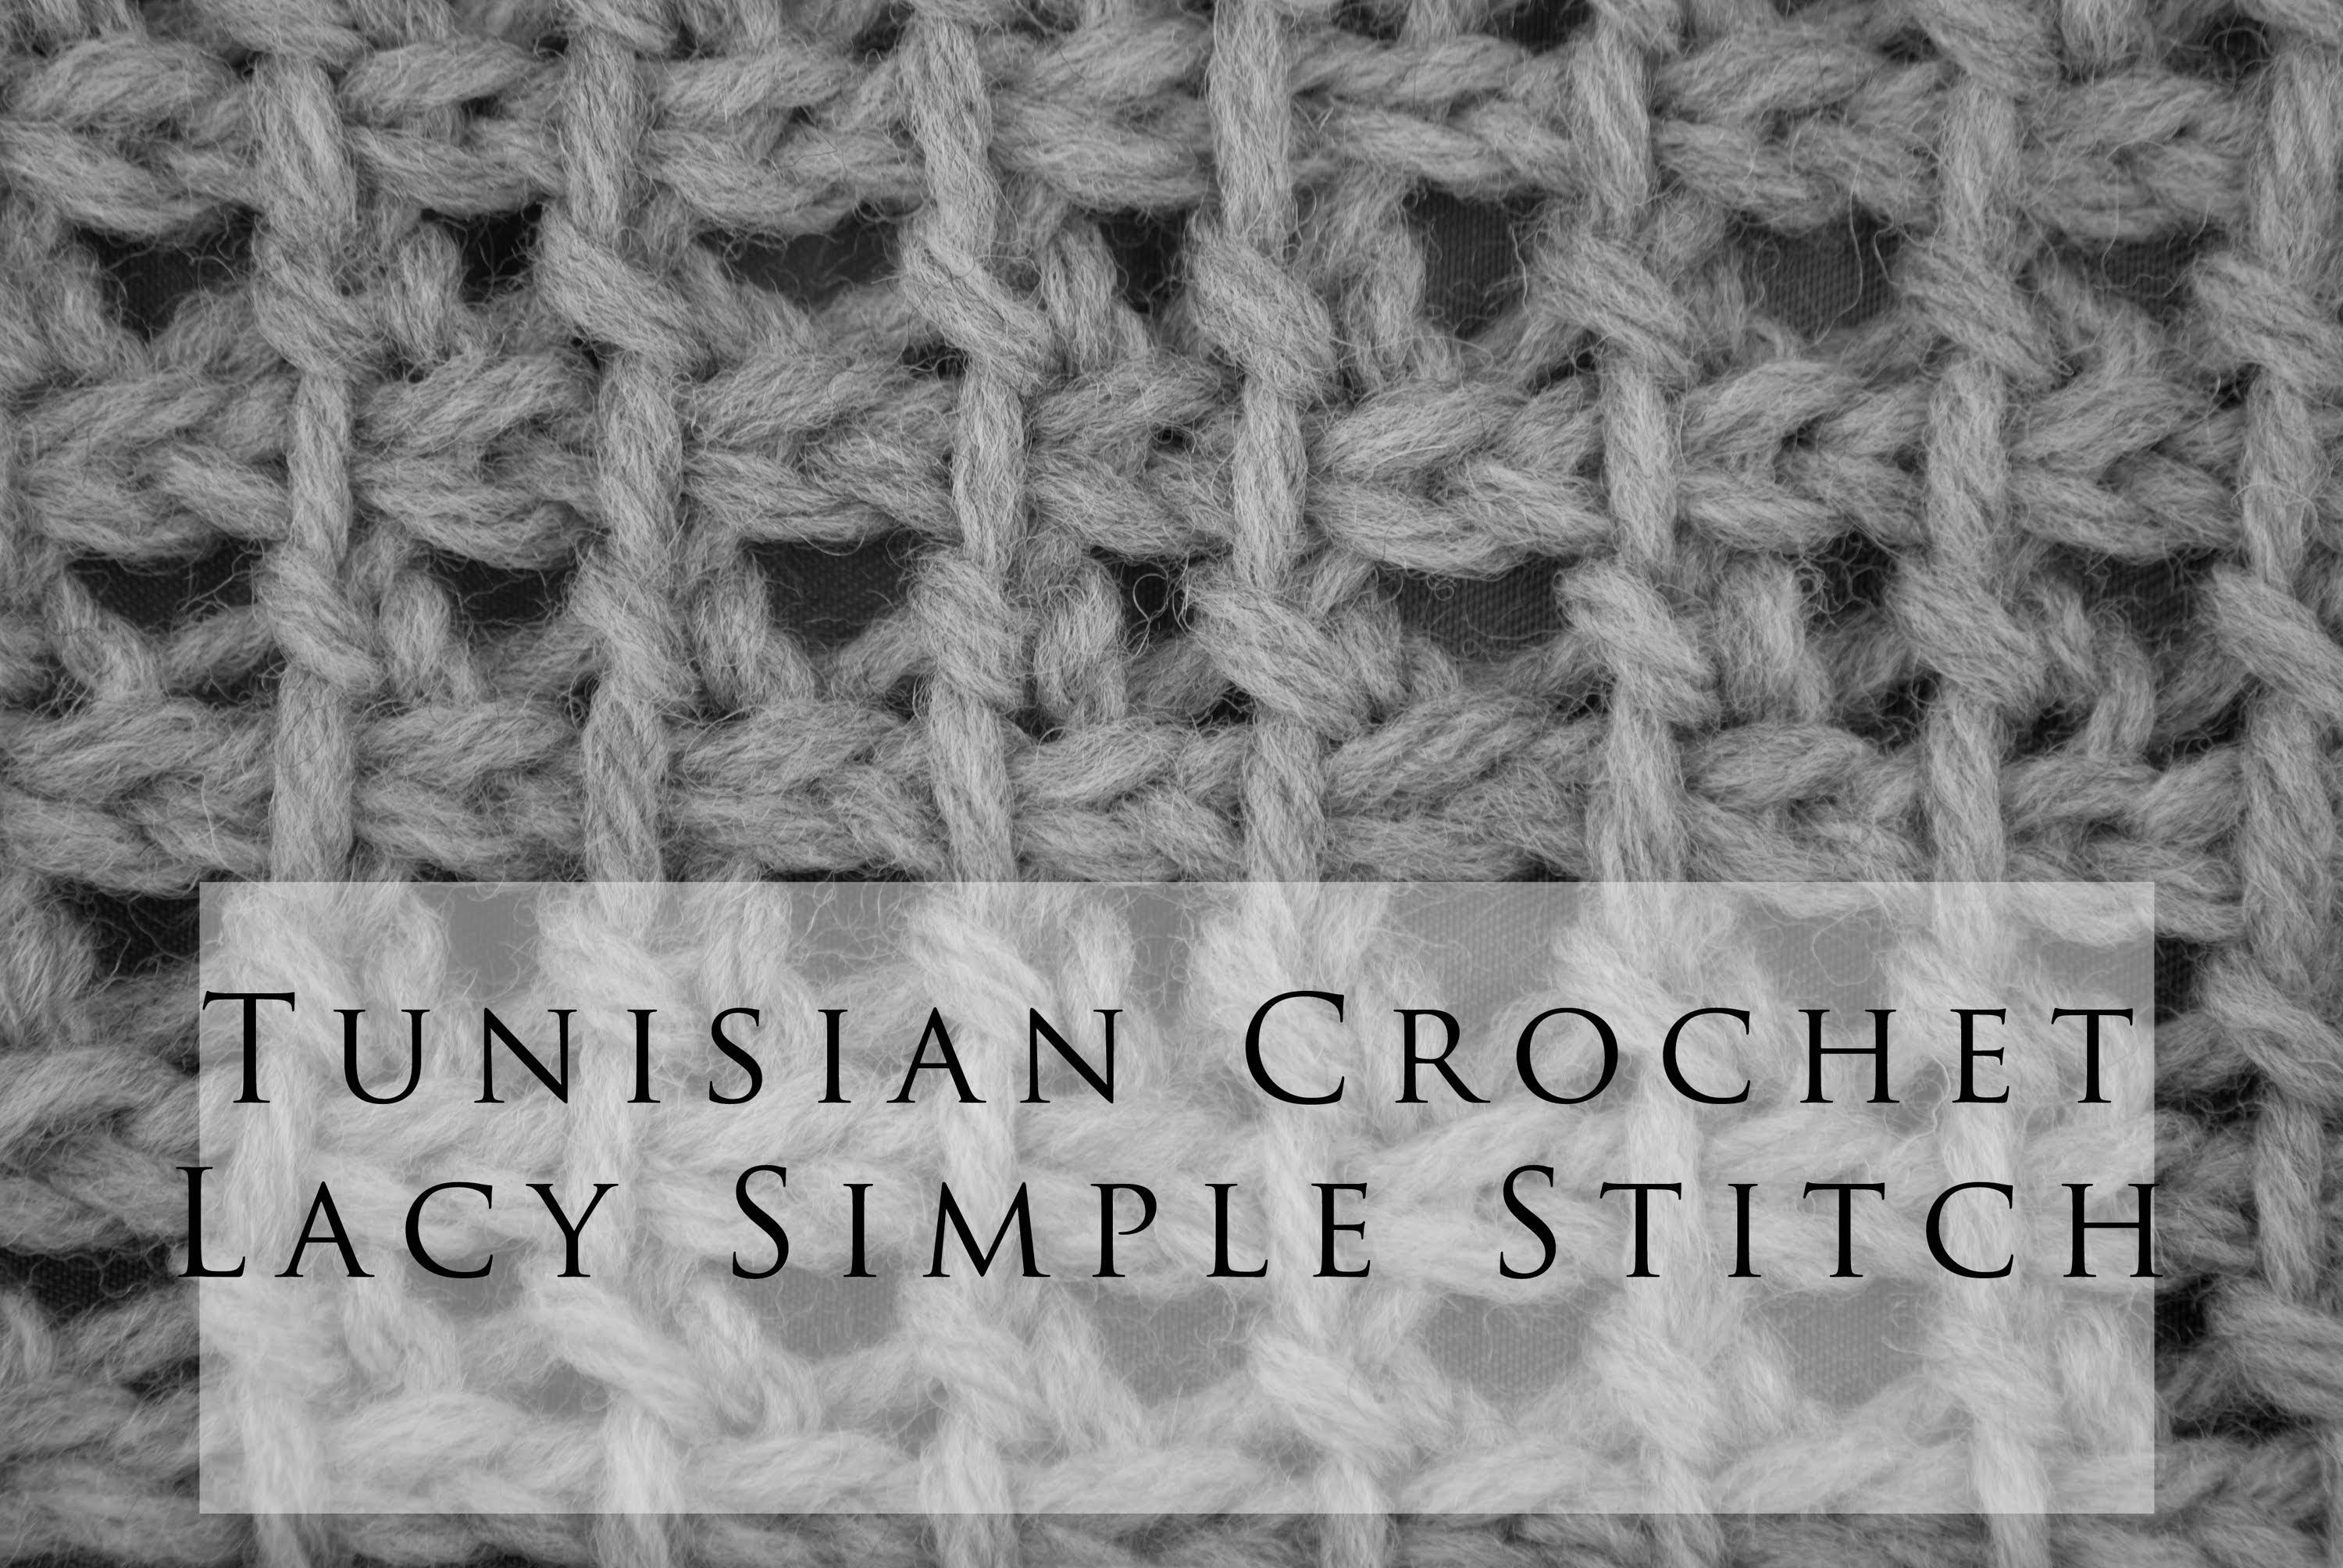 Tunisian crochet lacy simple stitch punto tunecino pinterest learn how to make different tunisian crochet stitches with free tutorials and patterns bankloansurffo Images